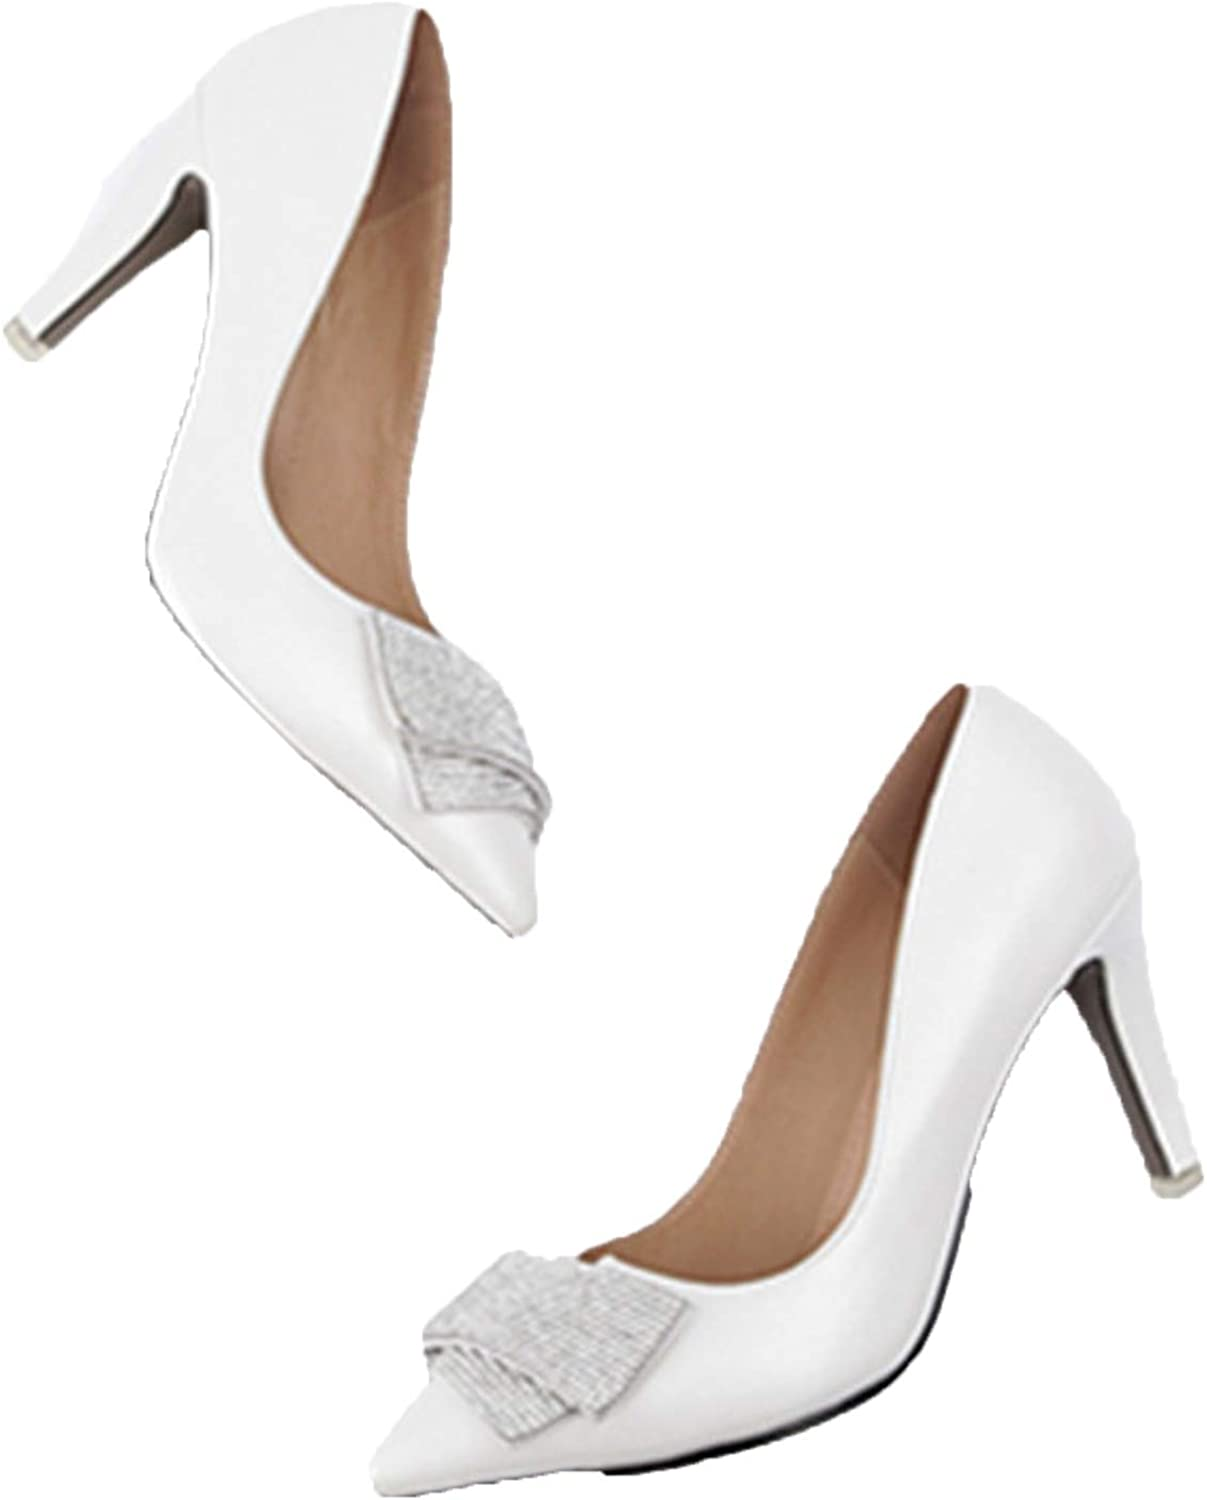 Show It Store Pointed Toe pu Leather Women Pumps Stiletto high Heels Fashion Elegant Party shoes